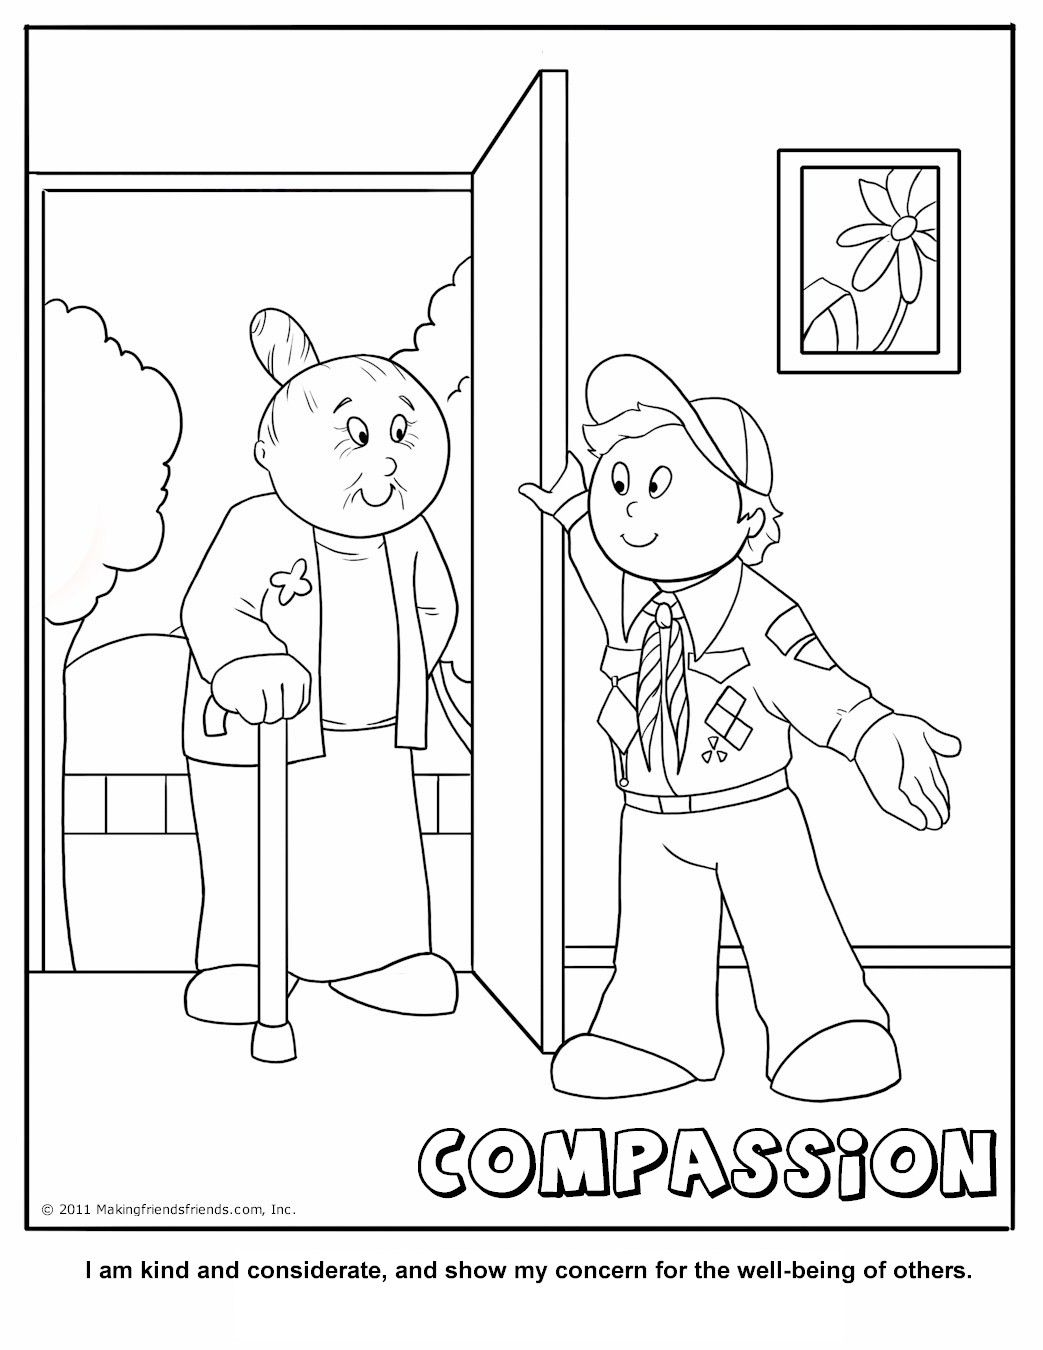 Compassion Coloring Page A Cub Scouting Core Value Ideas for